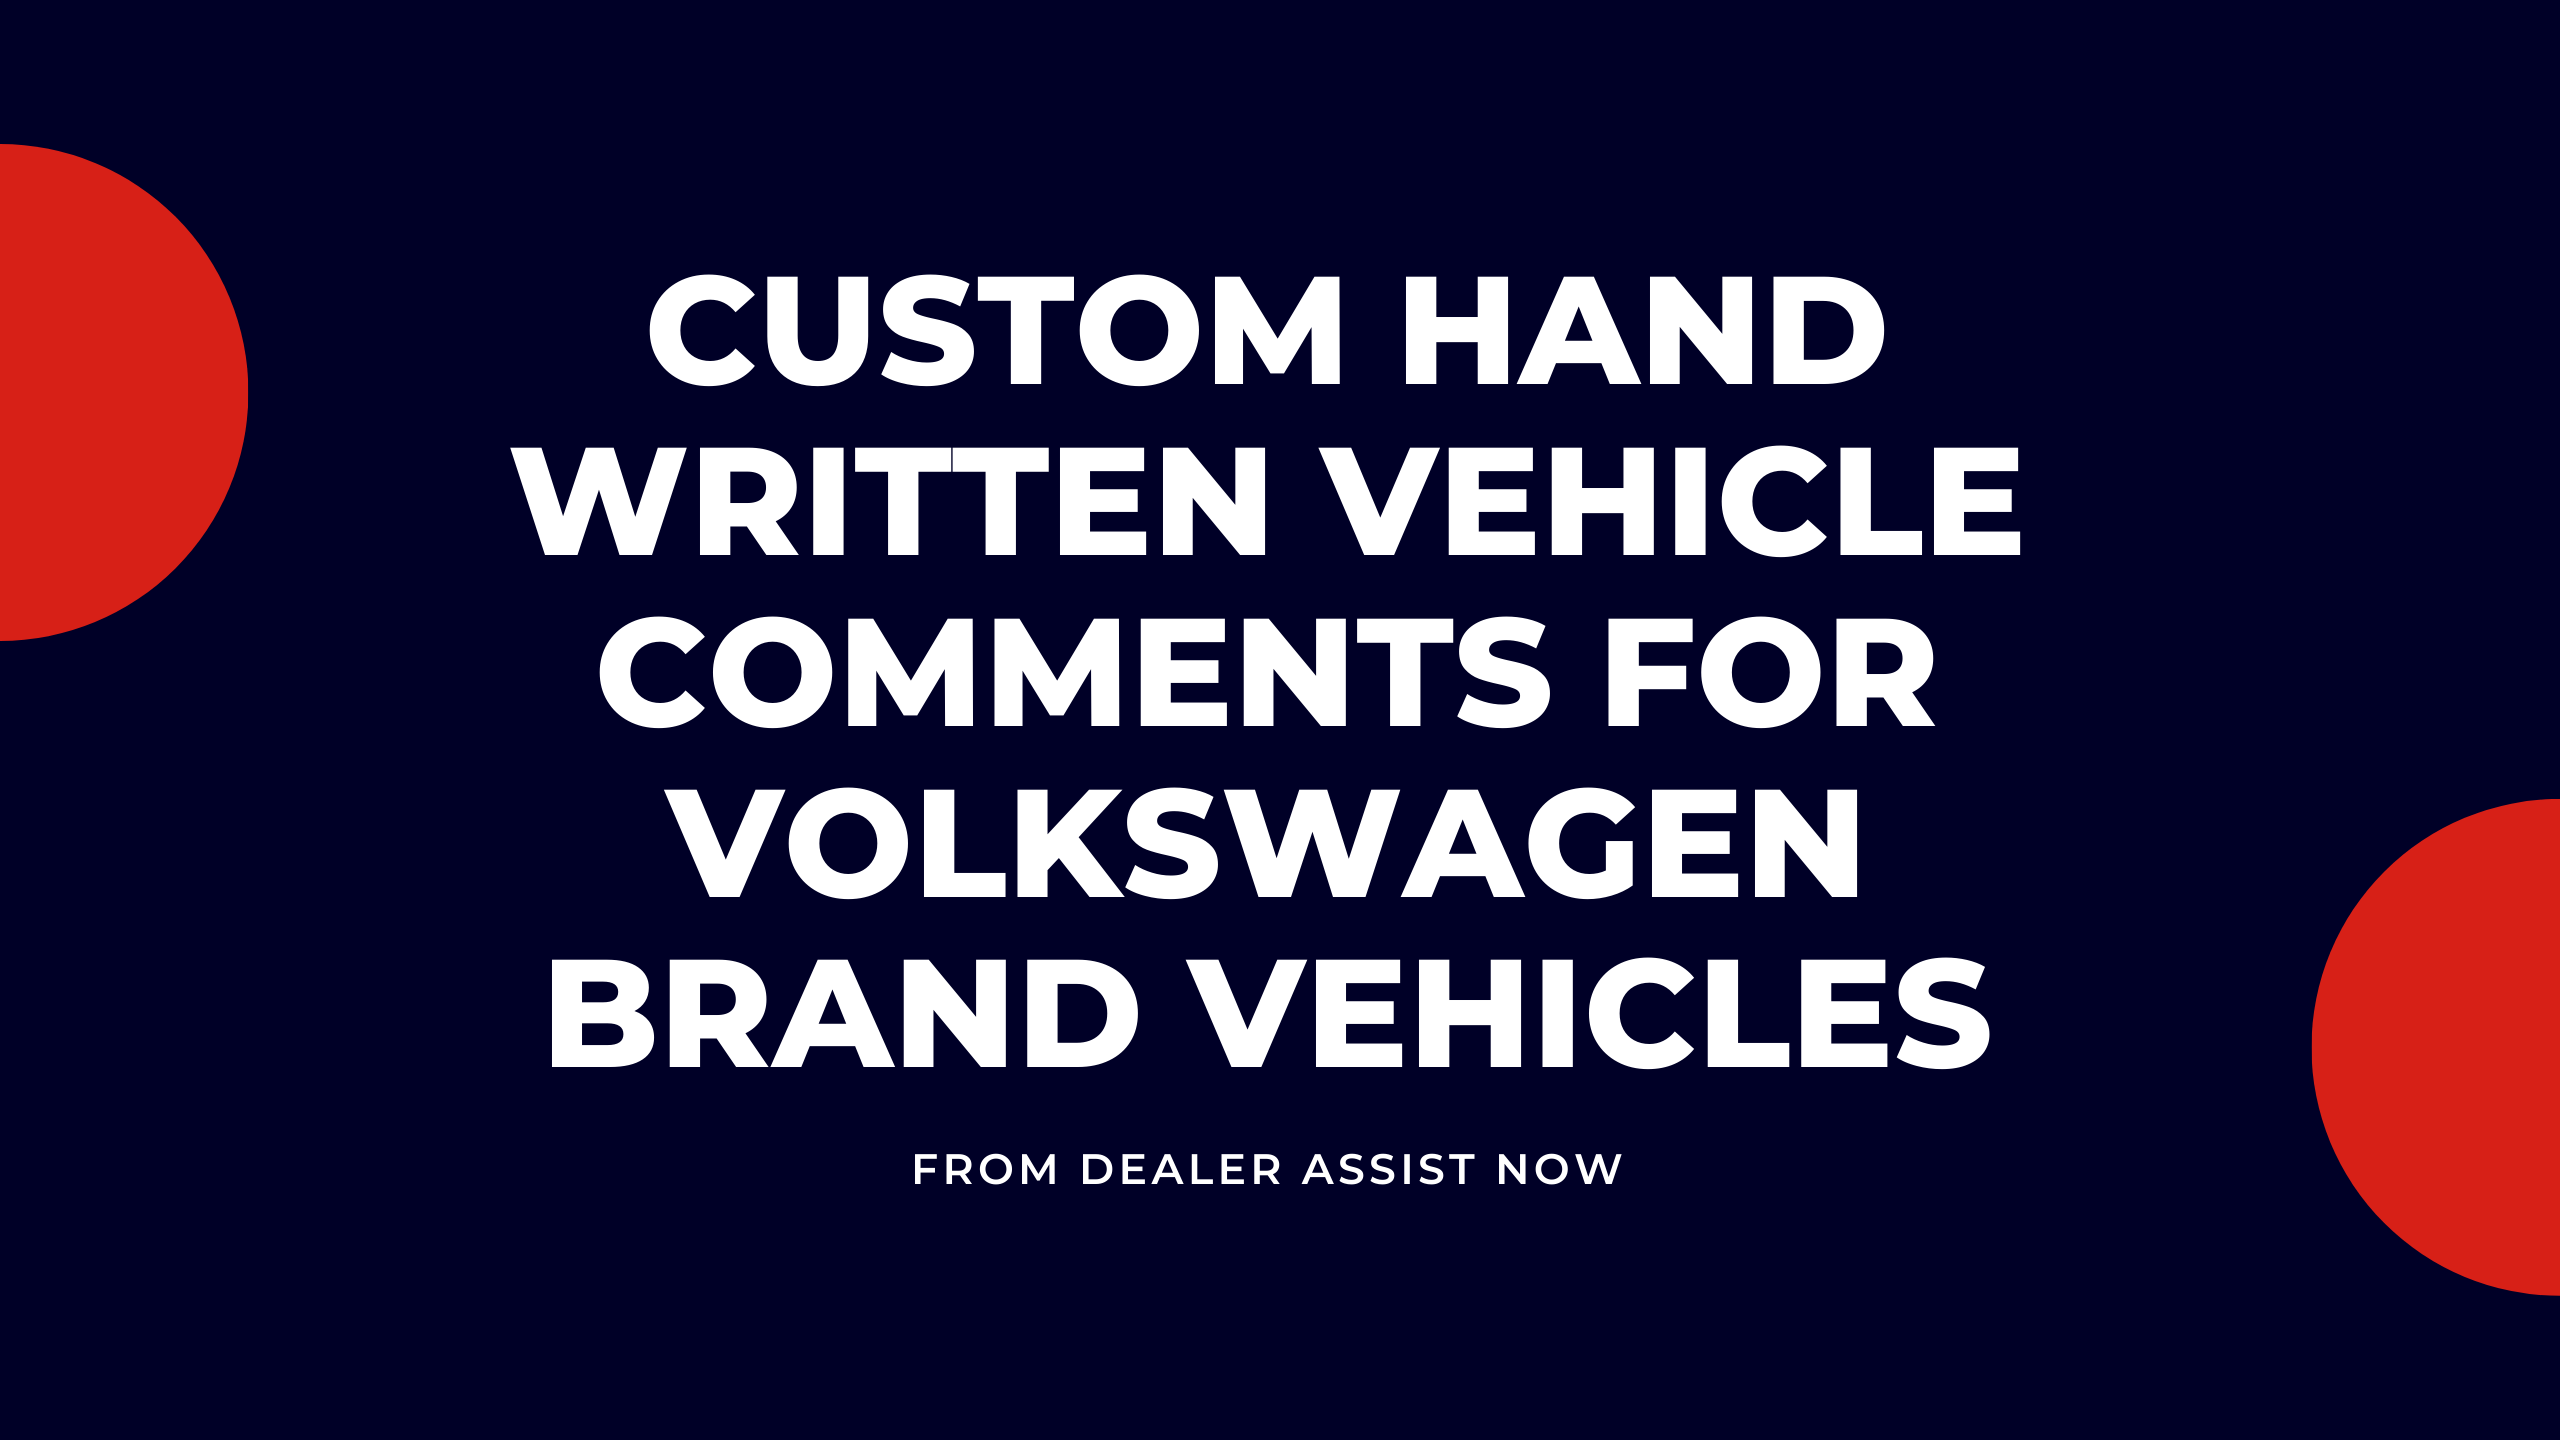 Custom Hand Written Vehicle Comments for Volkswagen Brand Vehicles